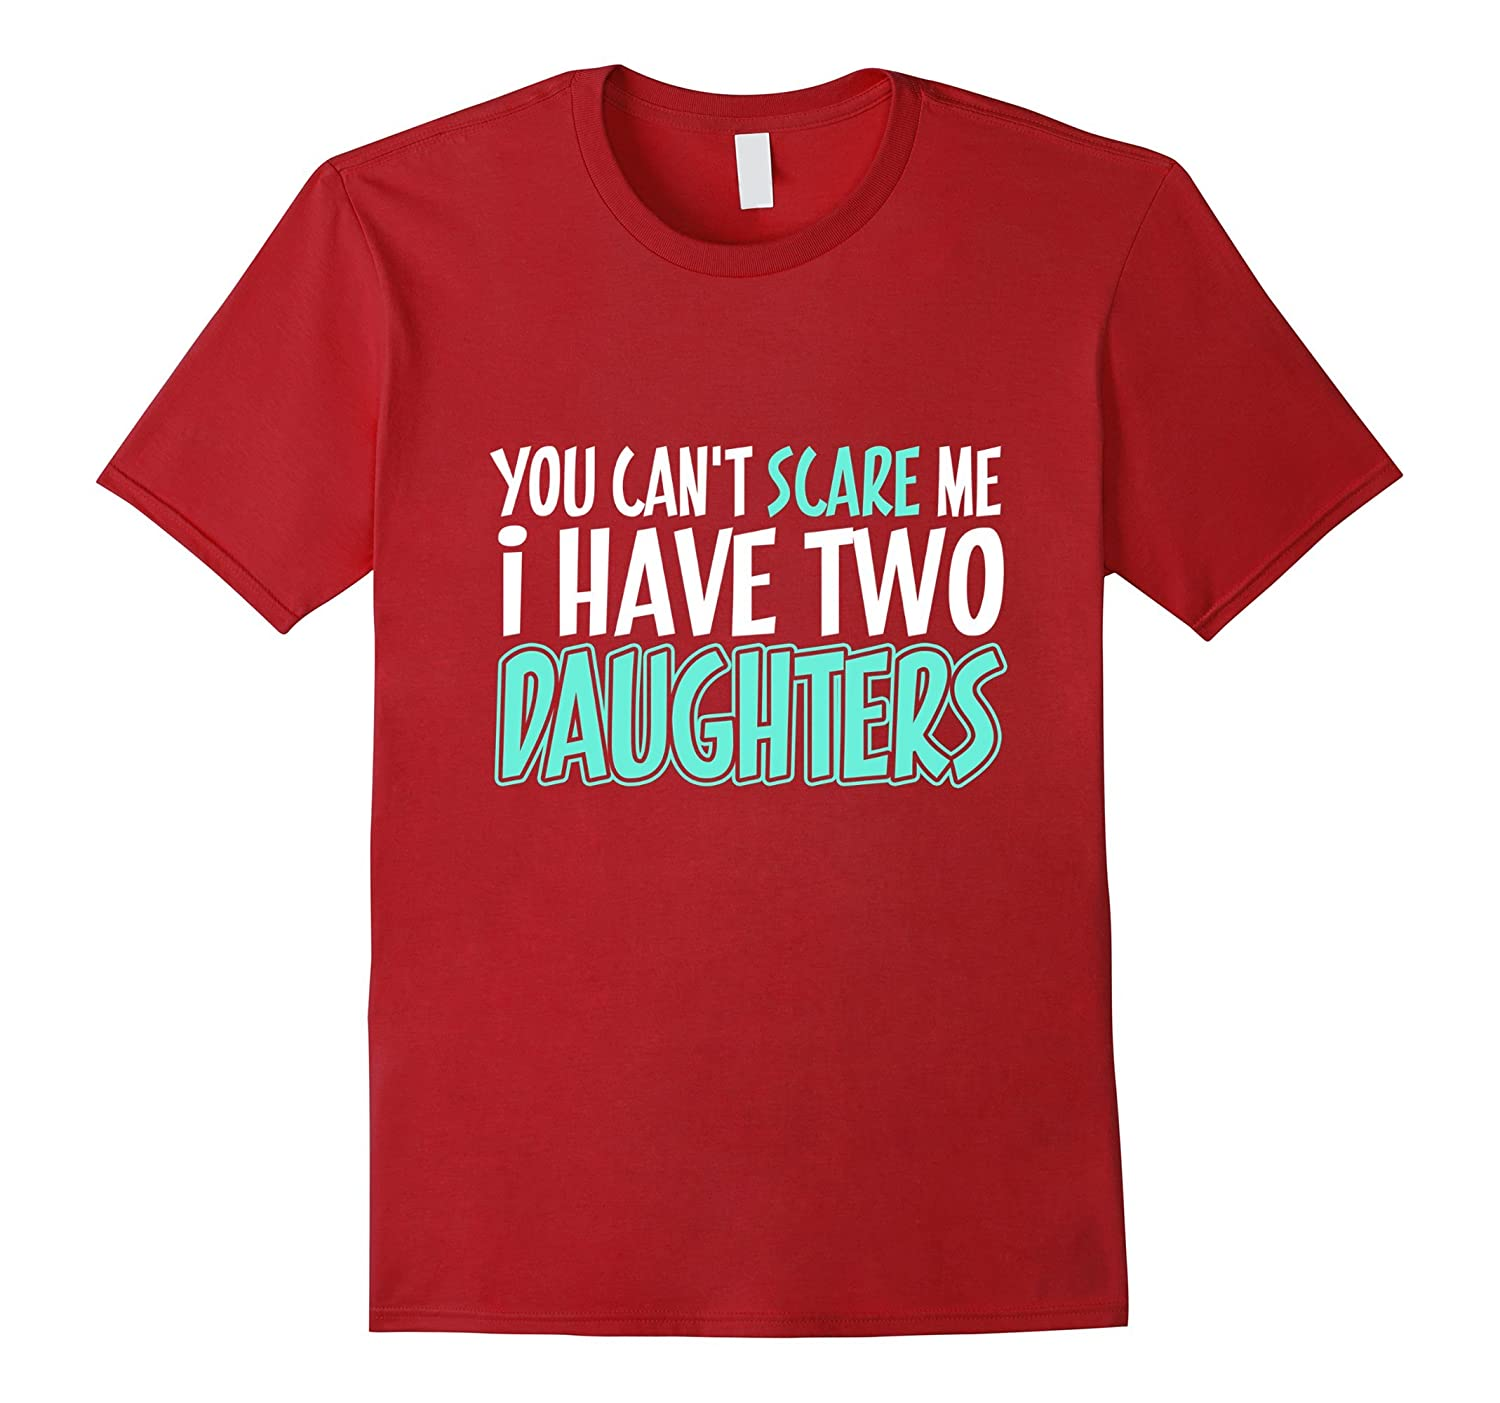 196dc70c You Cant Scare Me I Have Two Daughters Fathers Day T-Shirt-TD ...